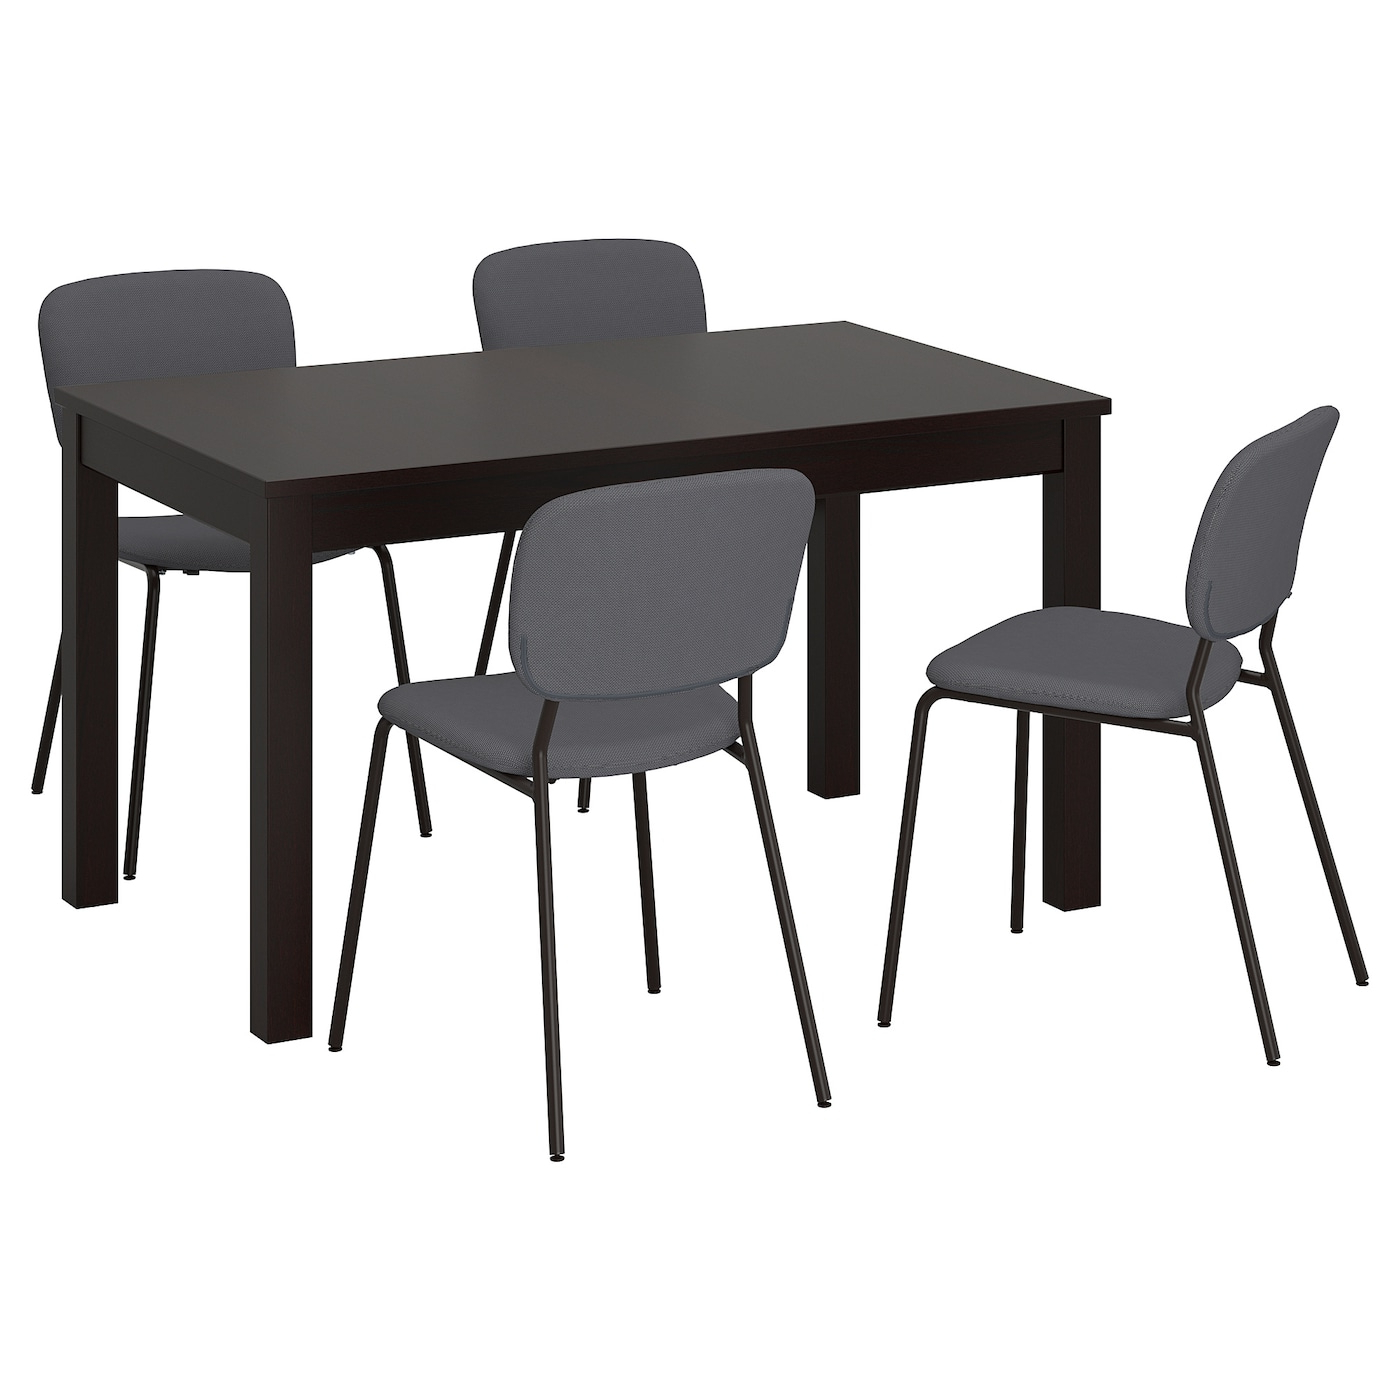 Small Dining Tables With Rustic Pine Ash Brown Finish Regarding Trendy Table And 4 Chairs Laneberg / Karljan Brown, Dark Grey Dark Grey (View 22 of 25)